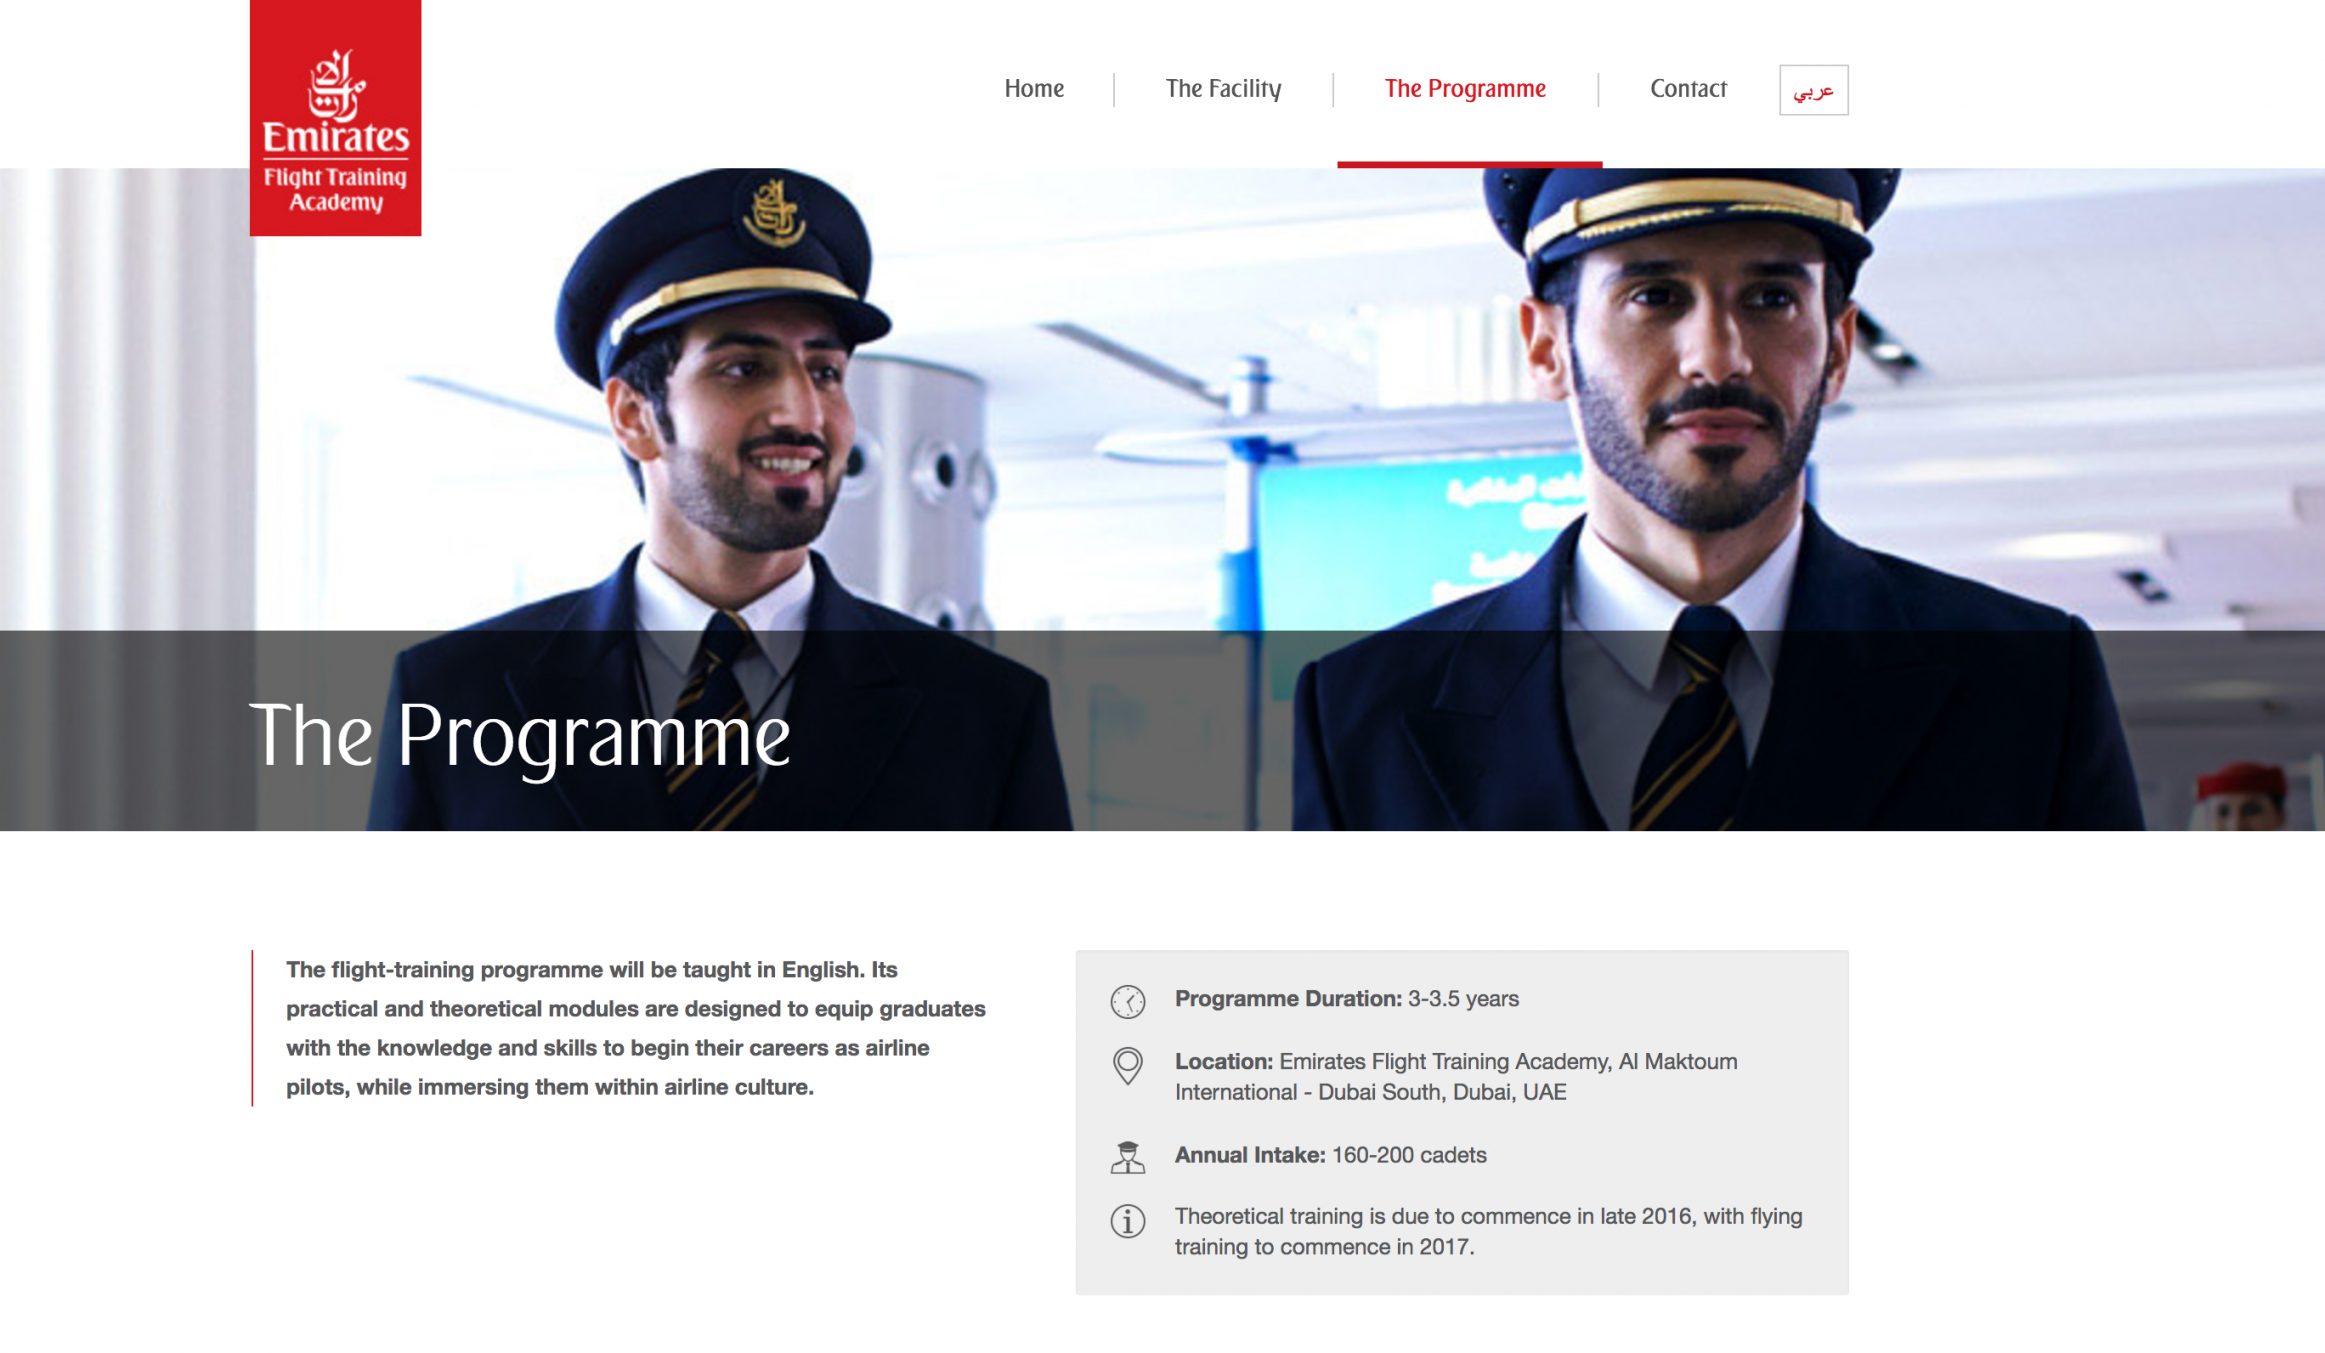 flygcforum com ✈ EMIRATES GROUP CAREERS ✈ Flight Deck